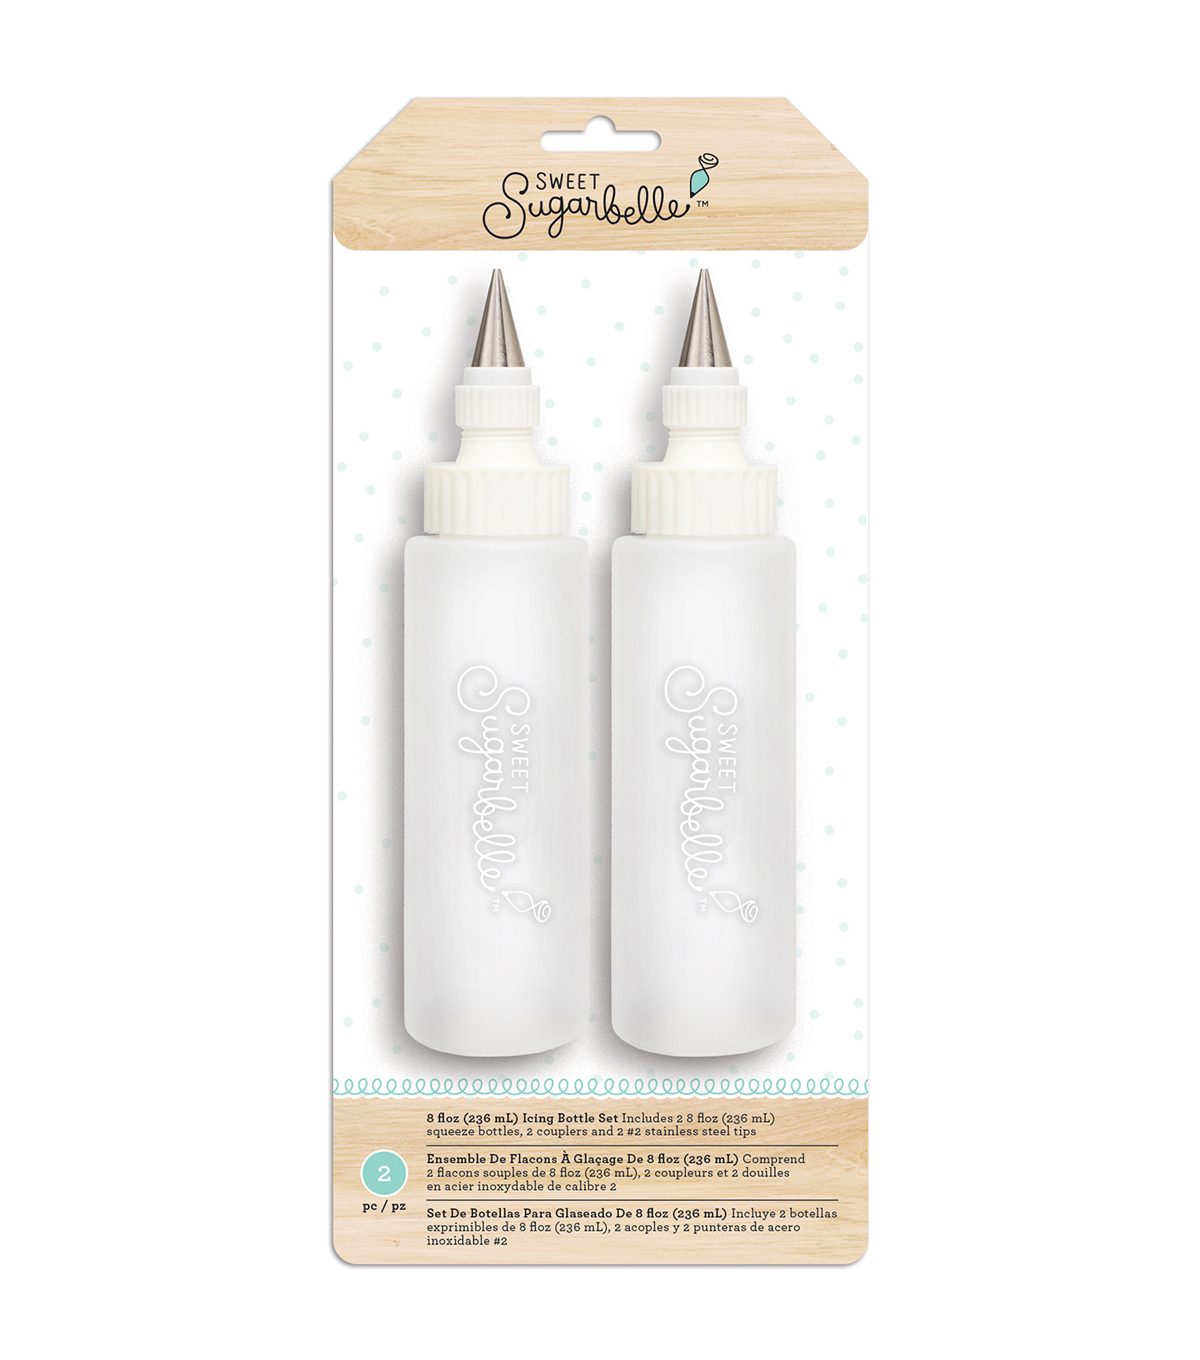 Sweet Sugarbelle 2 pk 8 fl. oz. Icing Bottle Set